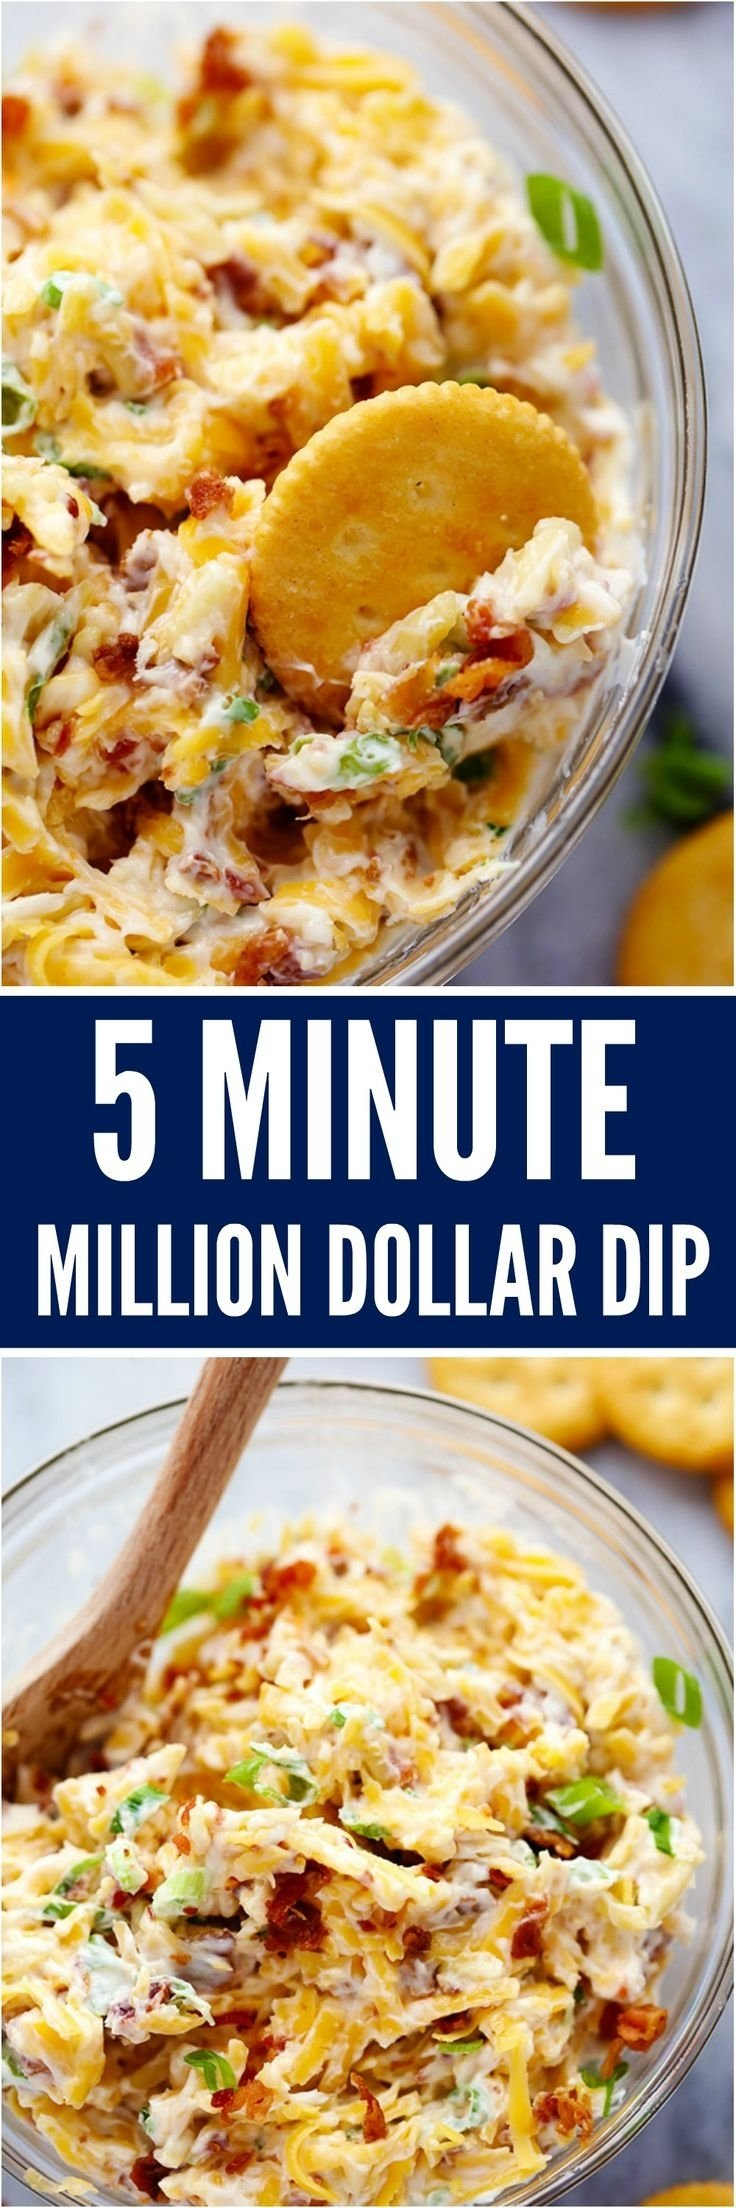 10 Lovely Quick And Easy Potluck Ideas 295 best tailgate food recipes images on pinterest savory snacks 1 2020